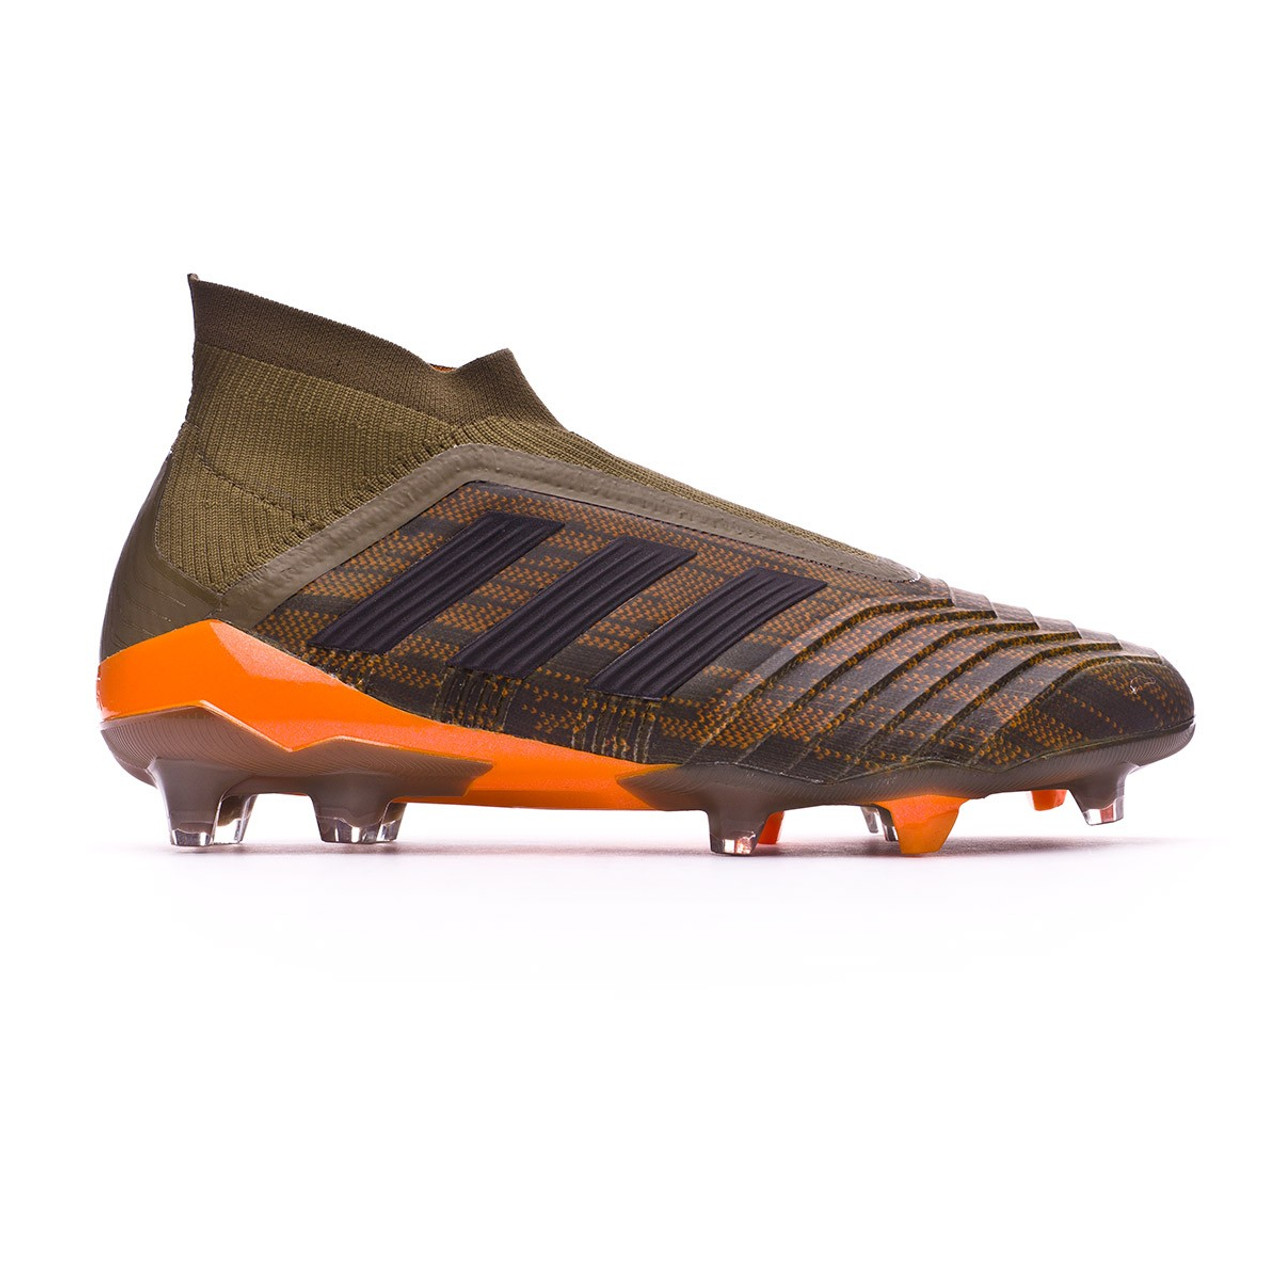 db2b4b1ce616 ADIDAS PREDATOR 18+ FG Trace Olive Bright Orange - Soccer Plus